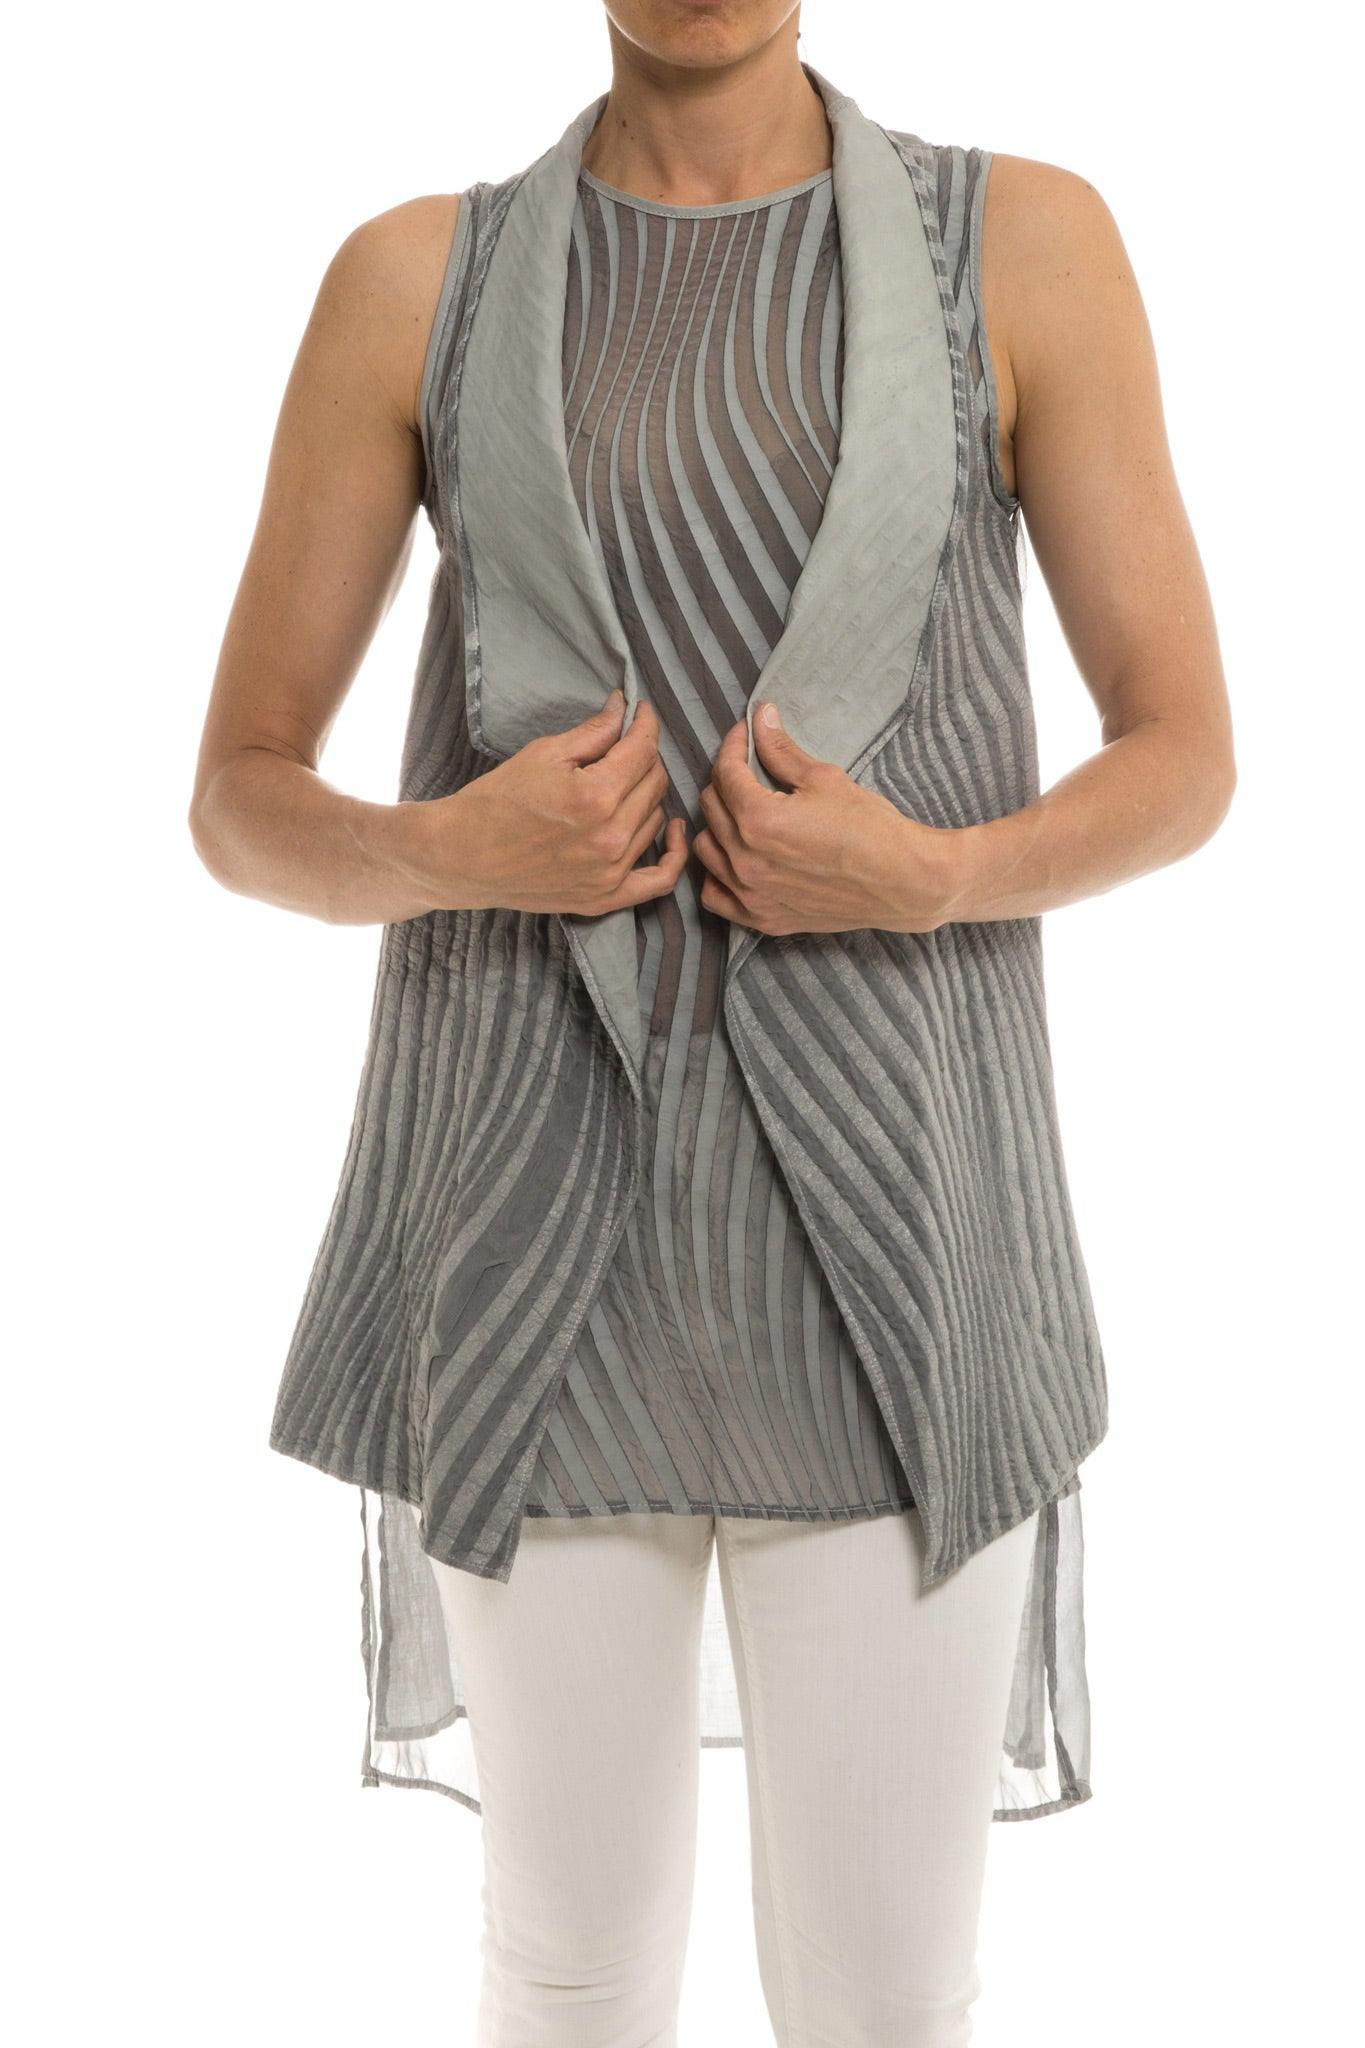 Kalahari Leather/Chiffon Vest in Pearl (3555090858077)